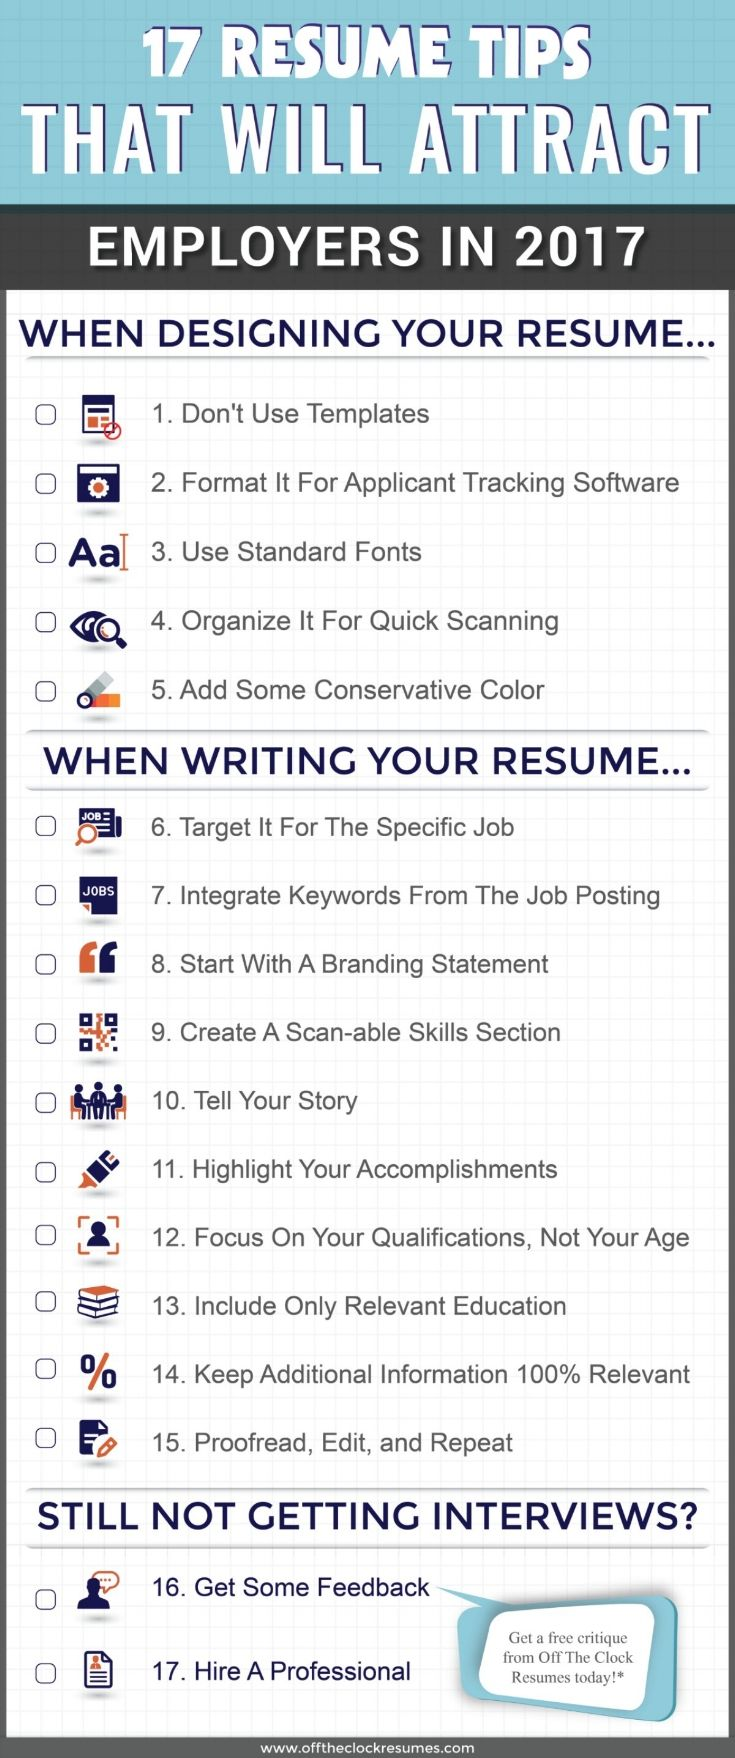 21 Resume Tips That Will Get More Interviews In 2021 Resume Tips Resume Writing Resume